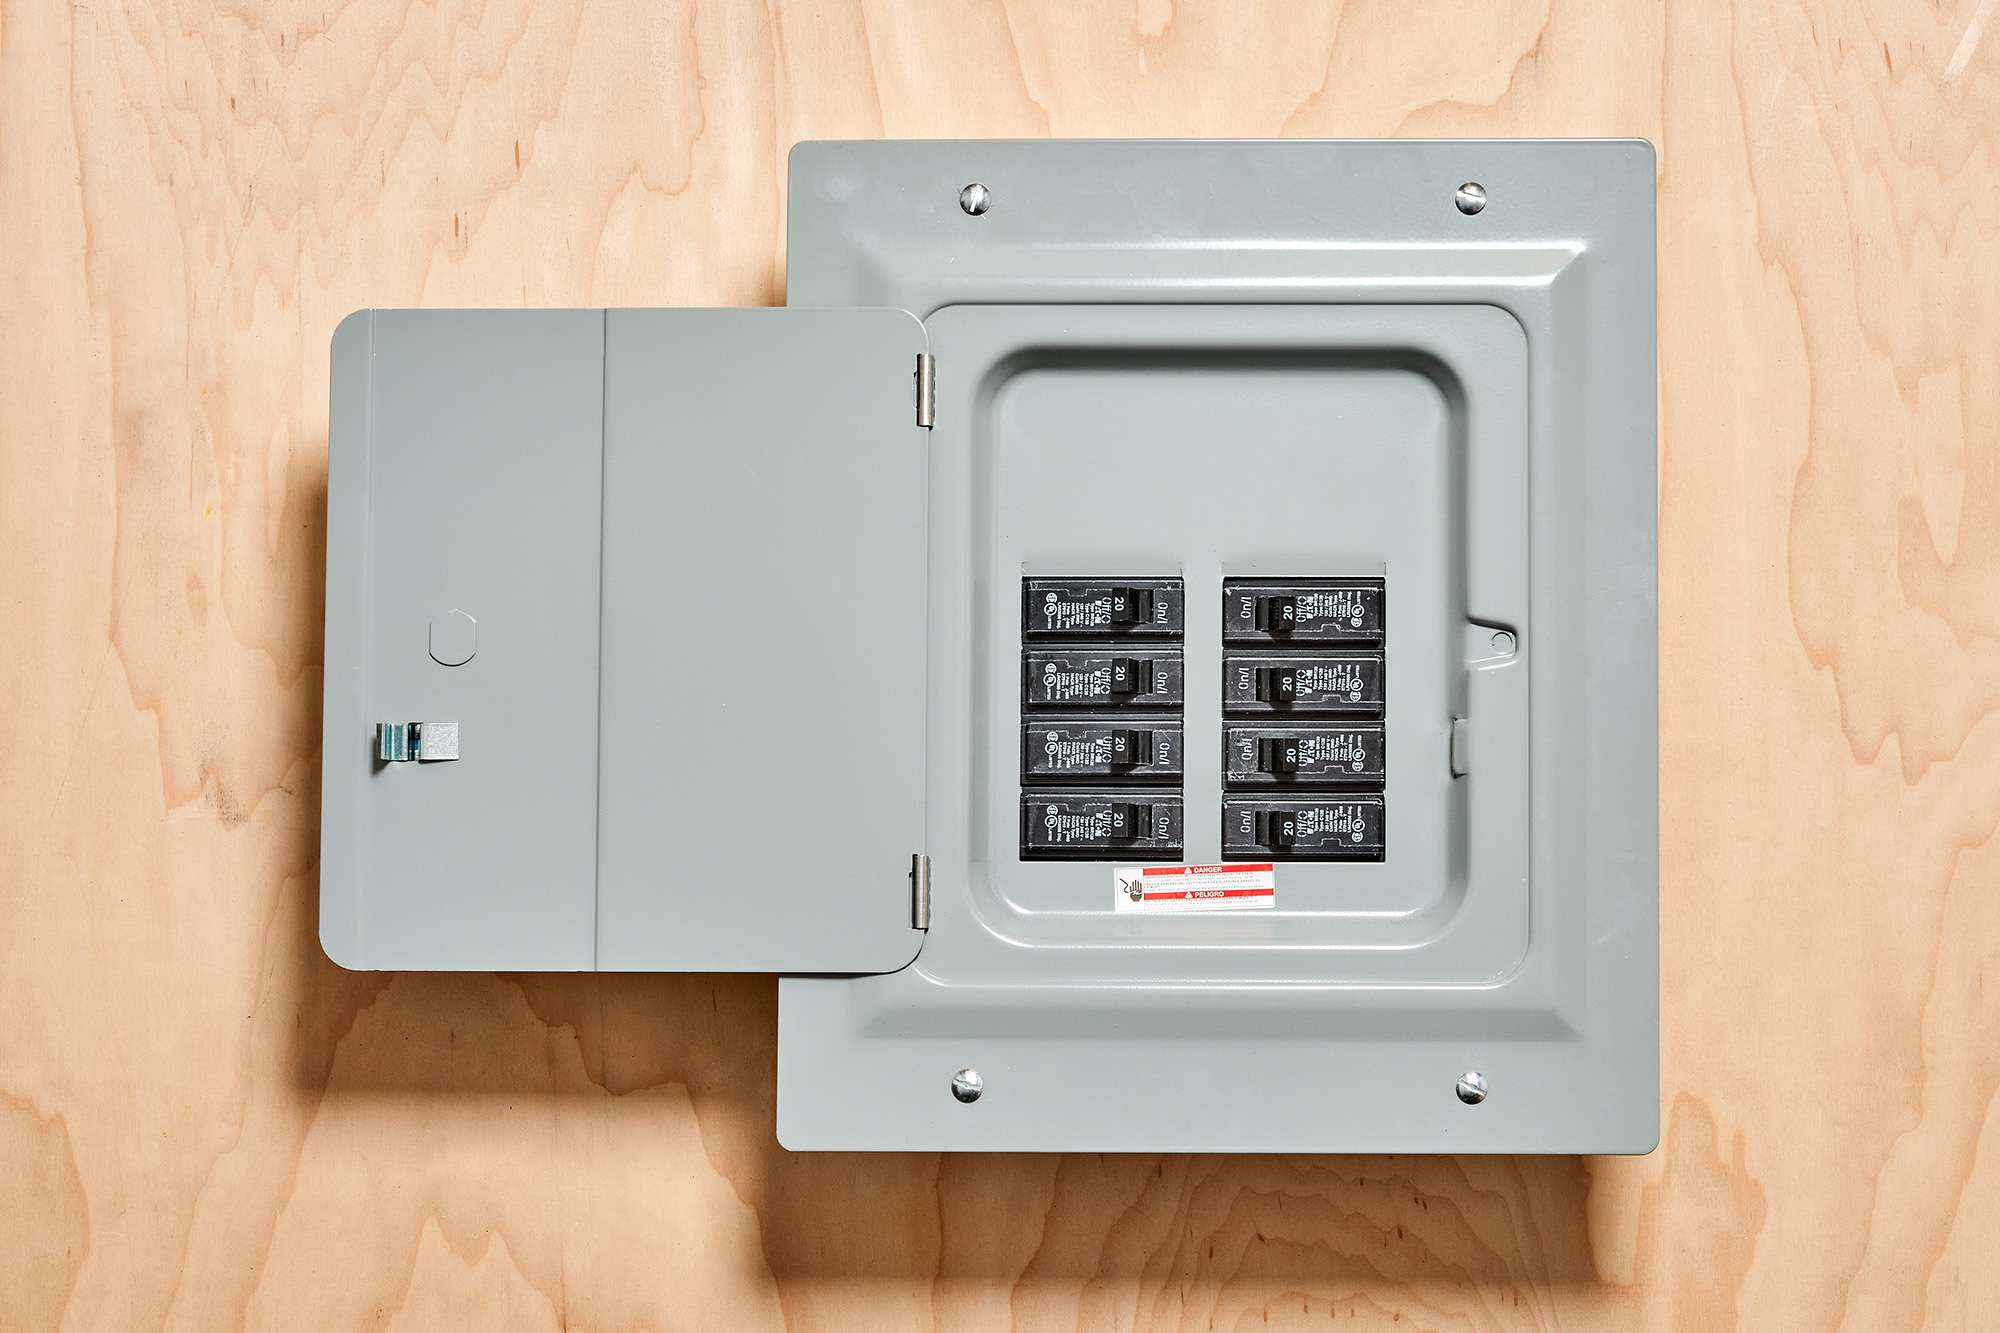 Secondary service panel with door opened showing branch circuit switches